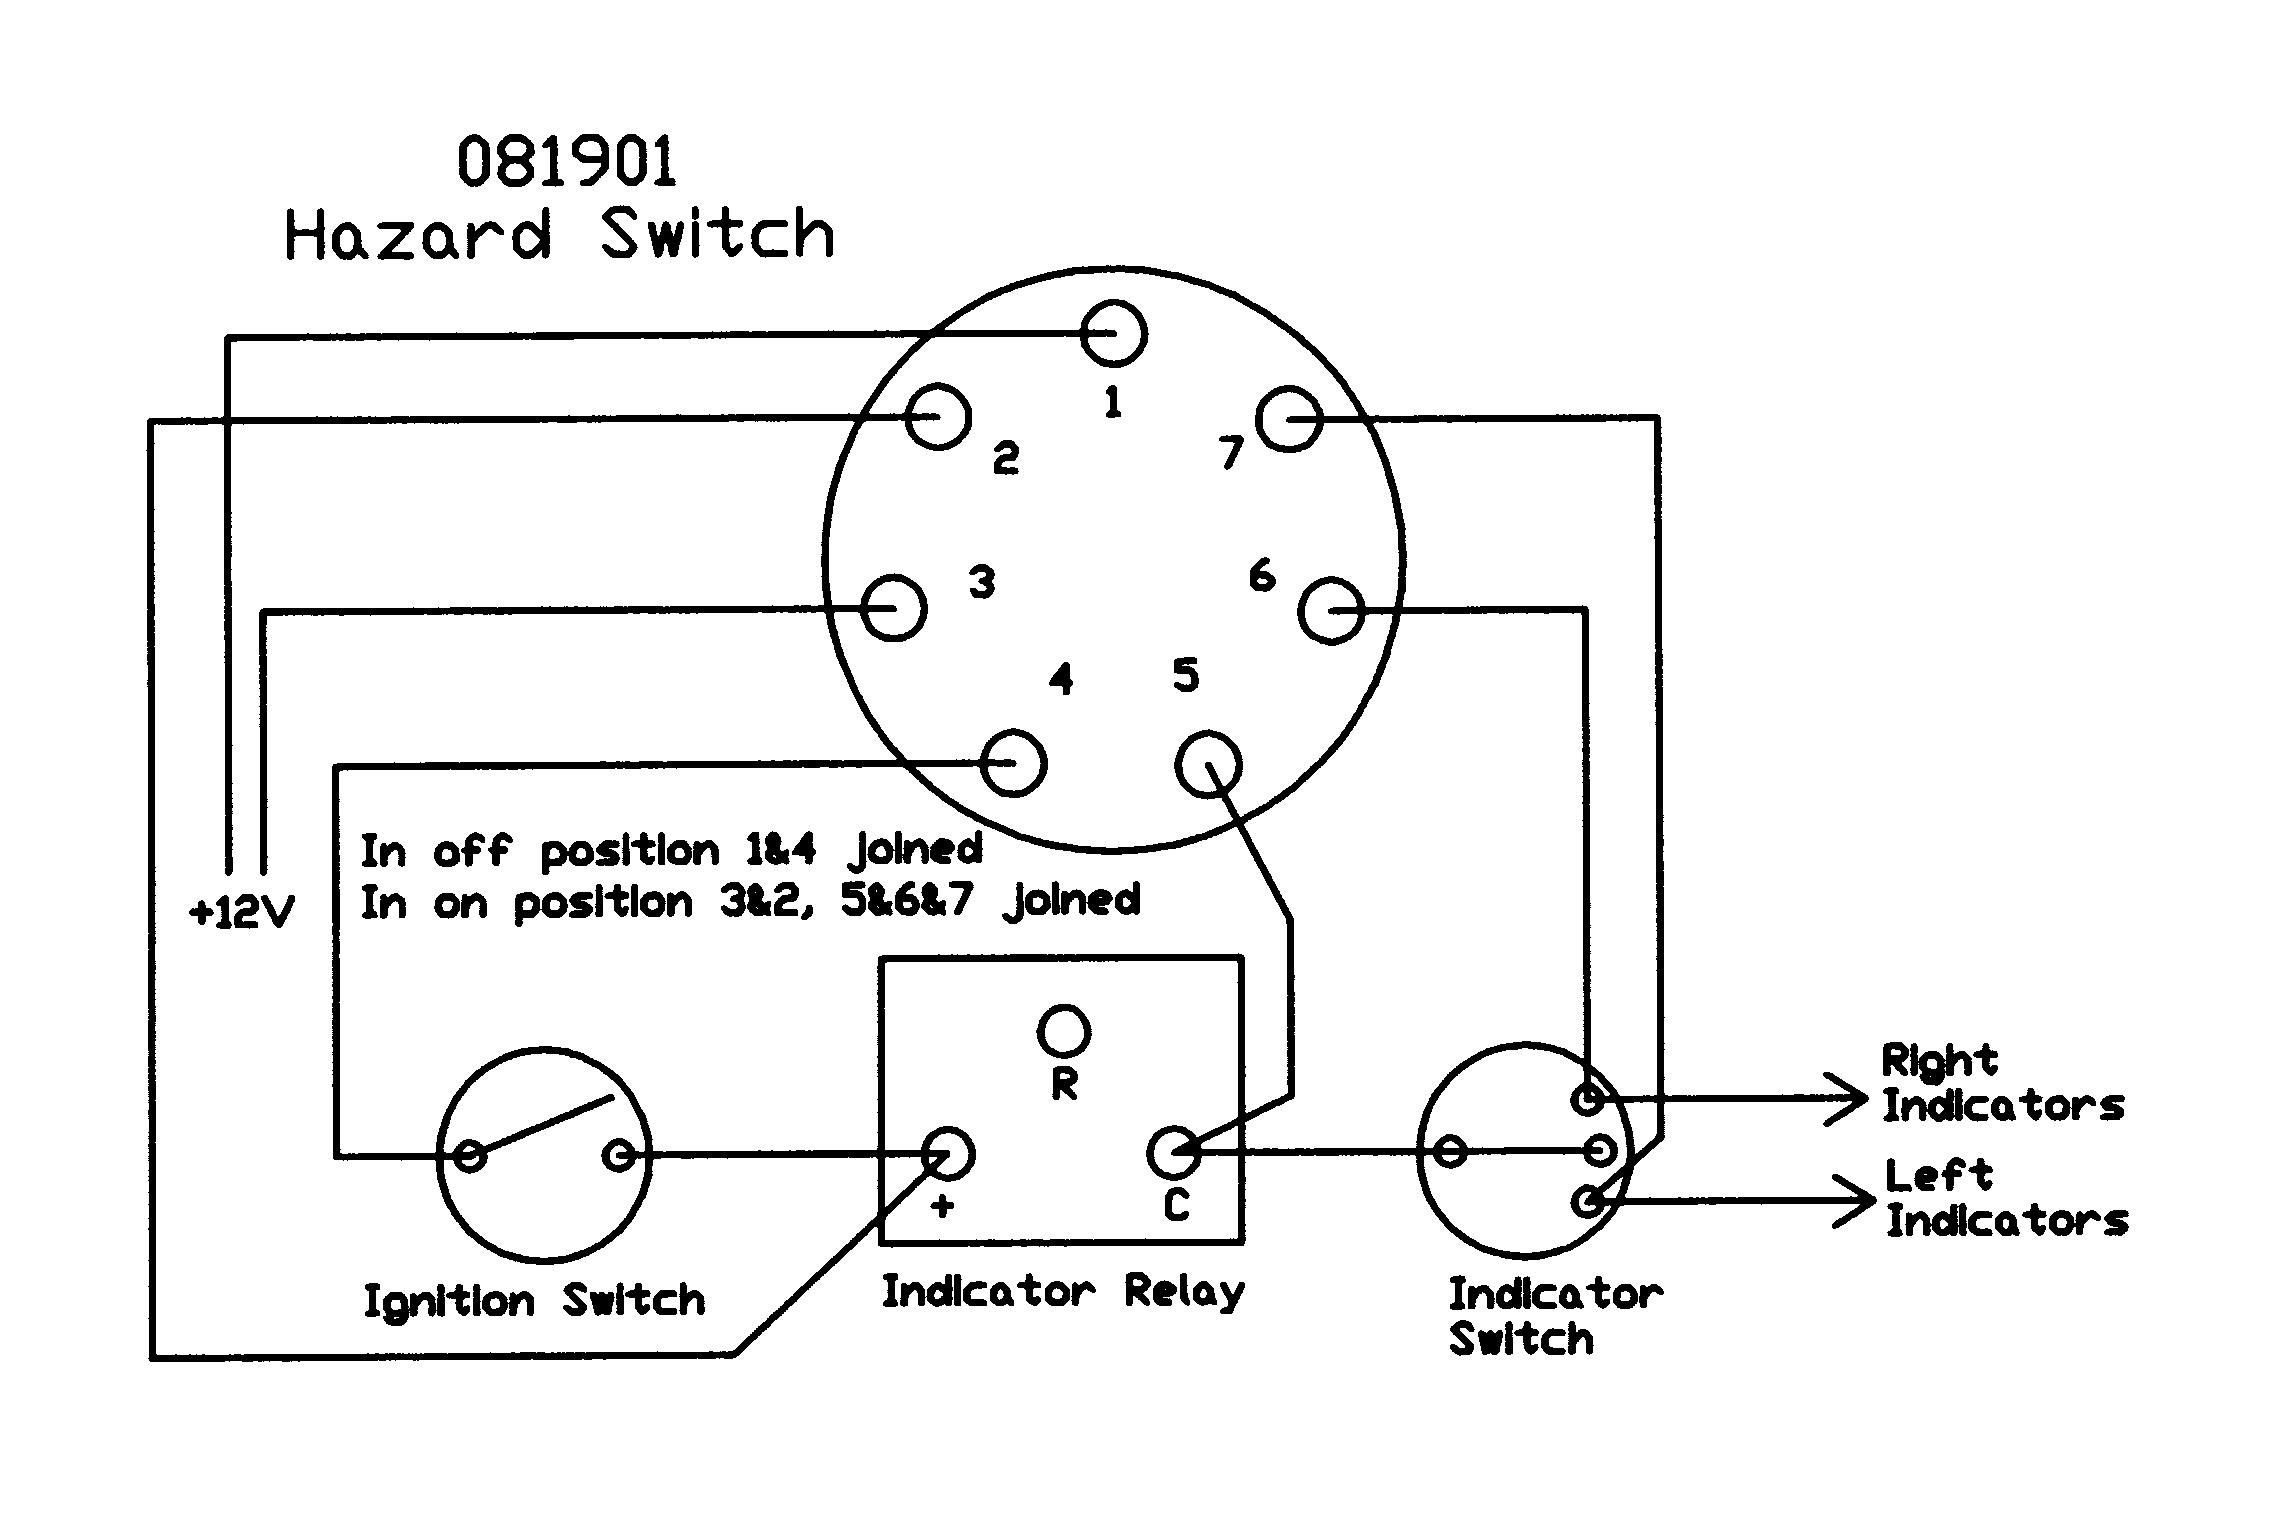 081901_wiring_diagram simple indicator wiring diagram air conditioning wiring diagrams lucas ford tractor ignition switch wiring diagram at virtualis.co